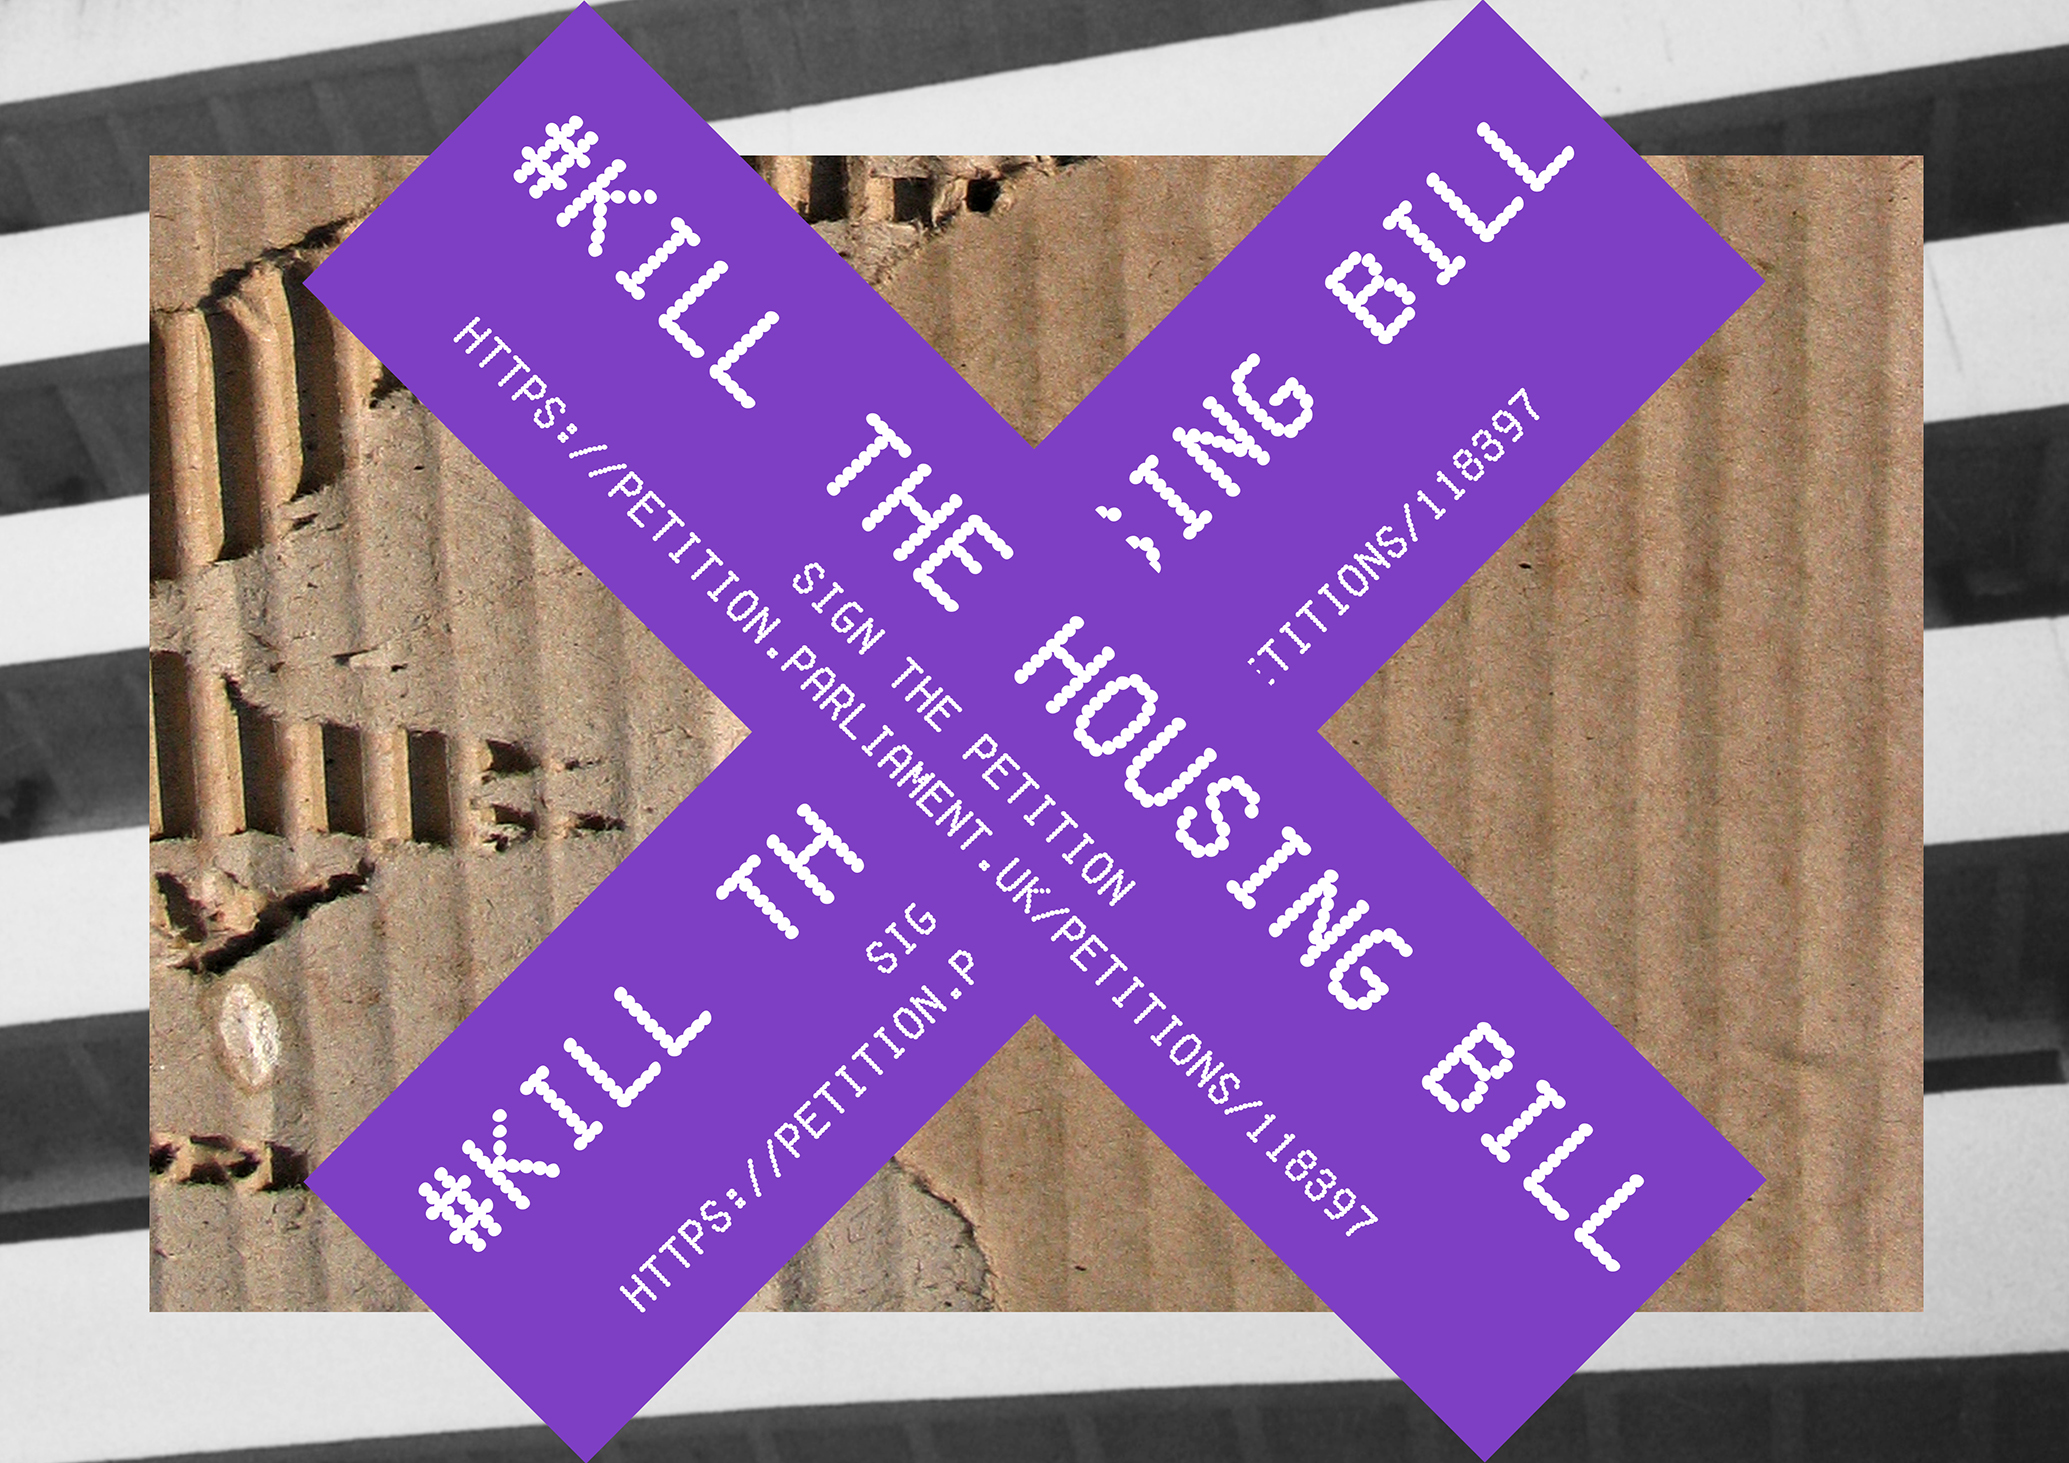 KILLTHEHOUSINGBILSNUFFCREATIVE2016-purp-LR.jpg